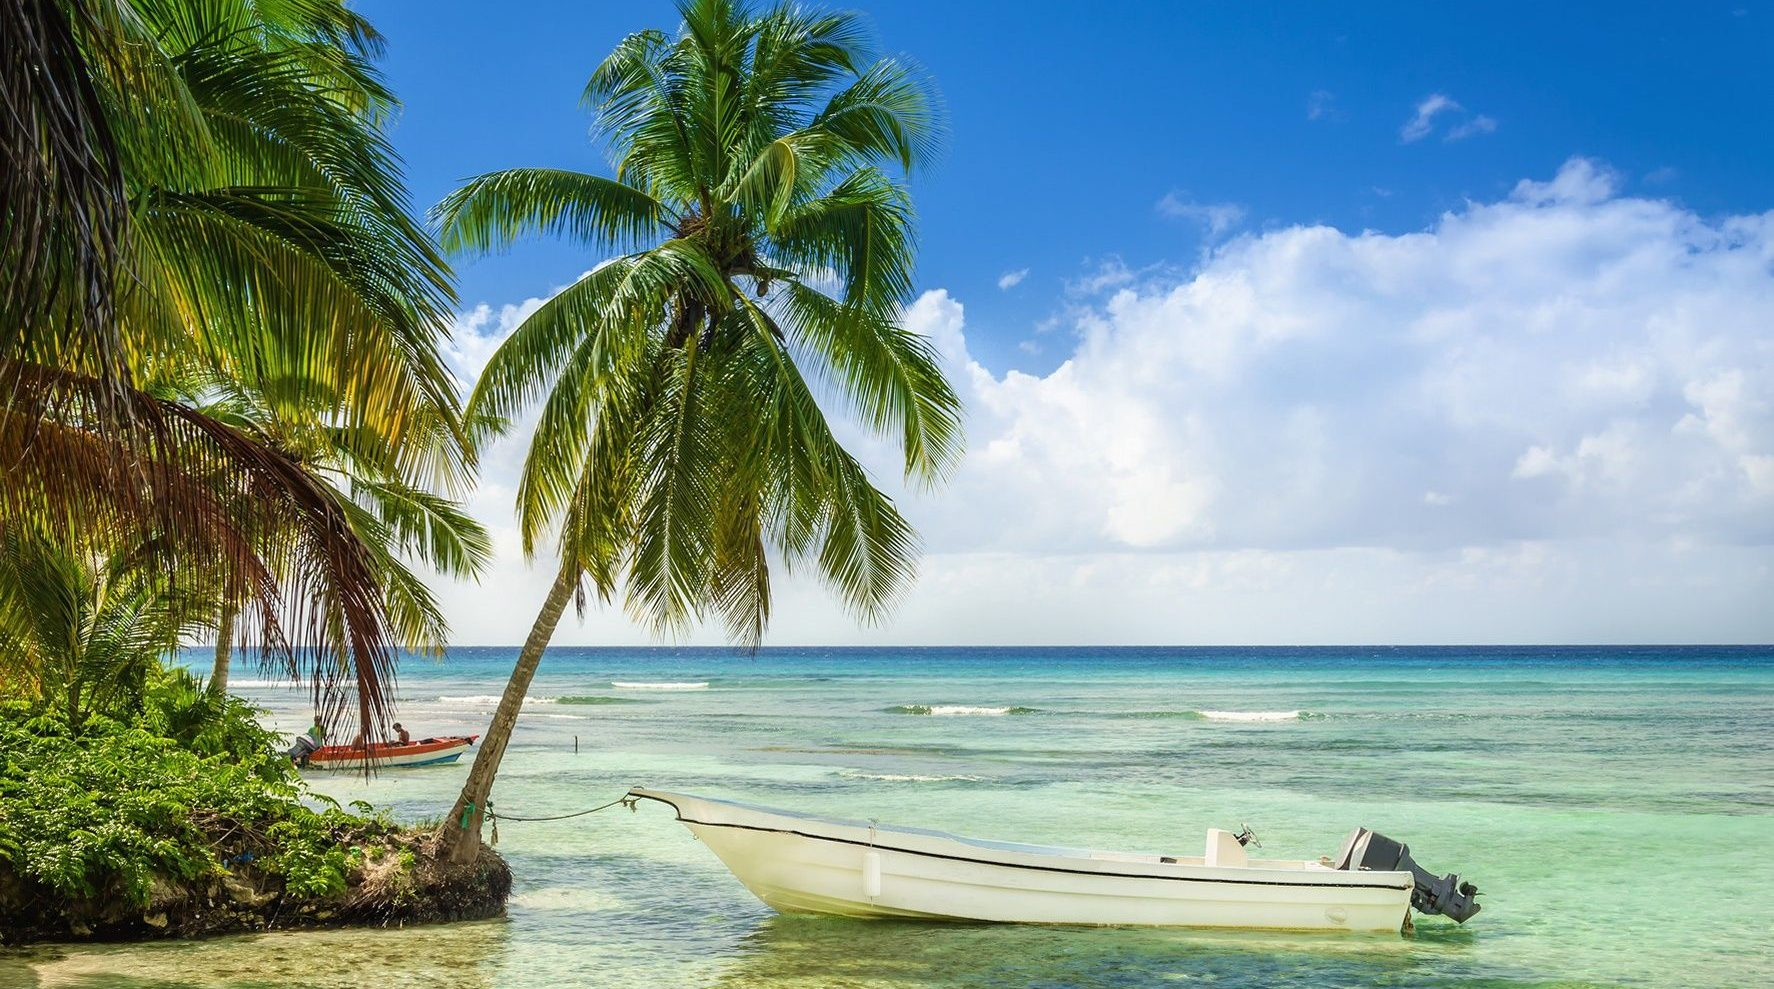 Beautiful_beach_with_palm_trees_and_moored_fishing_boat